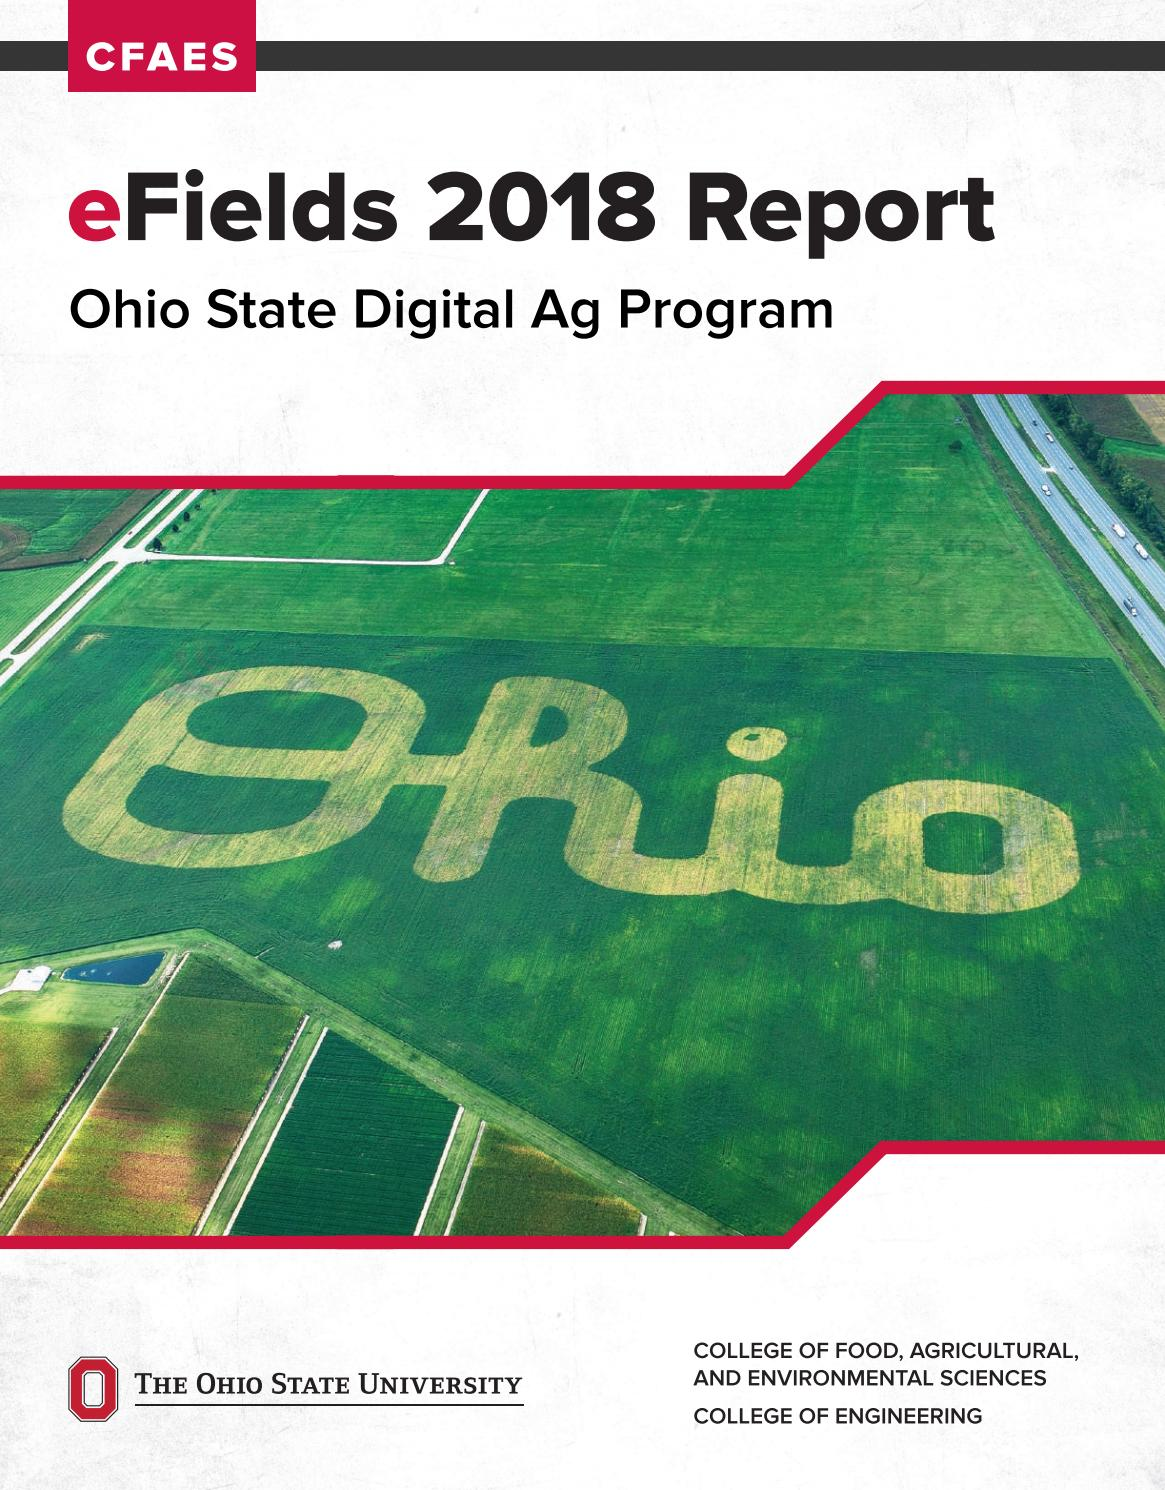 2018 Efields Report By Ohio State